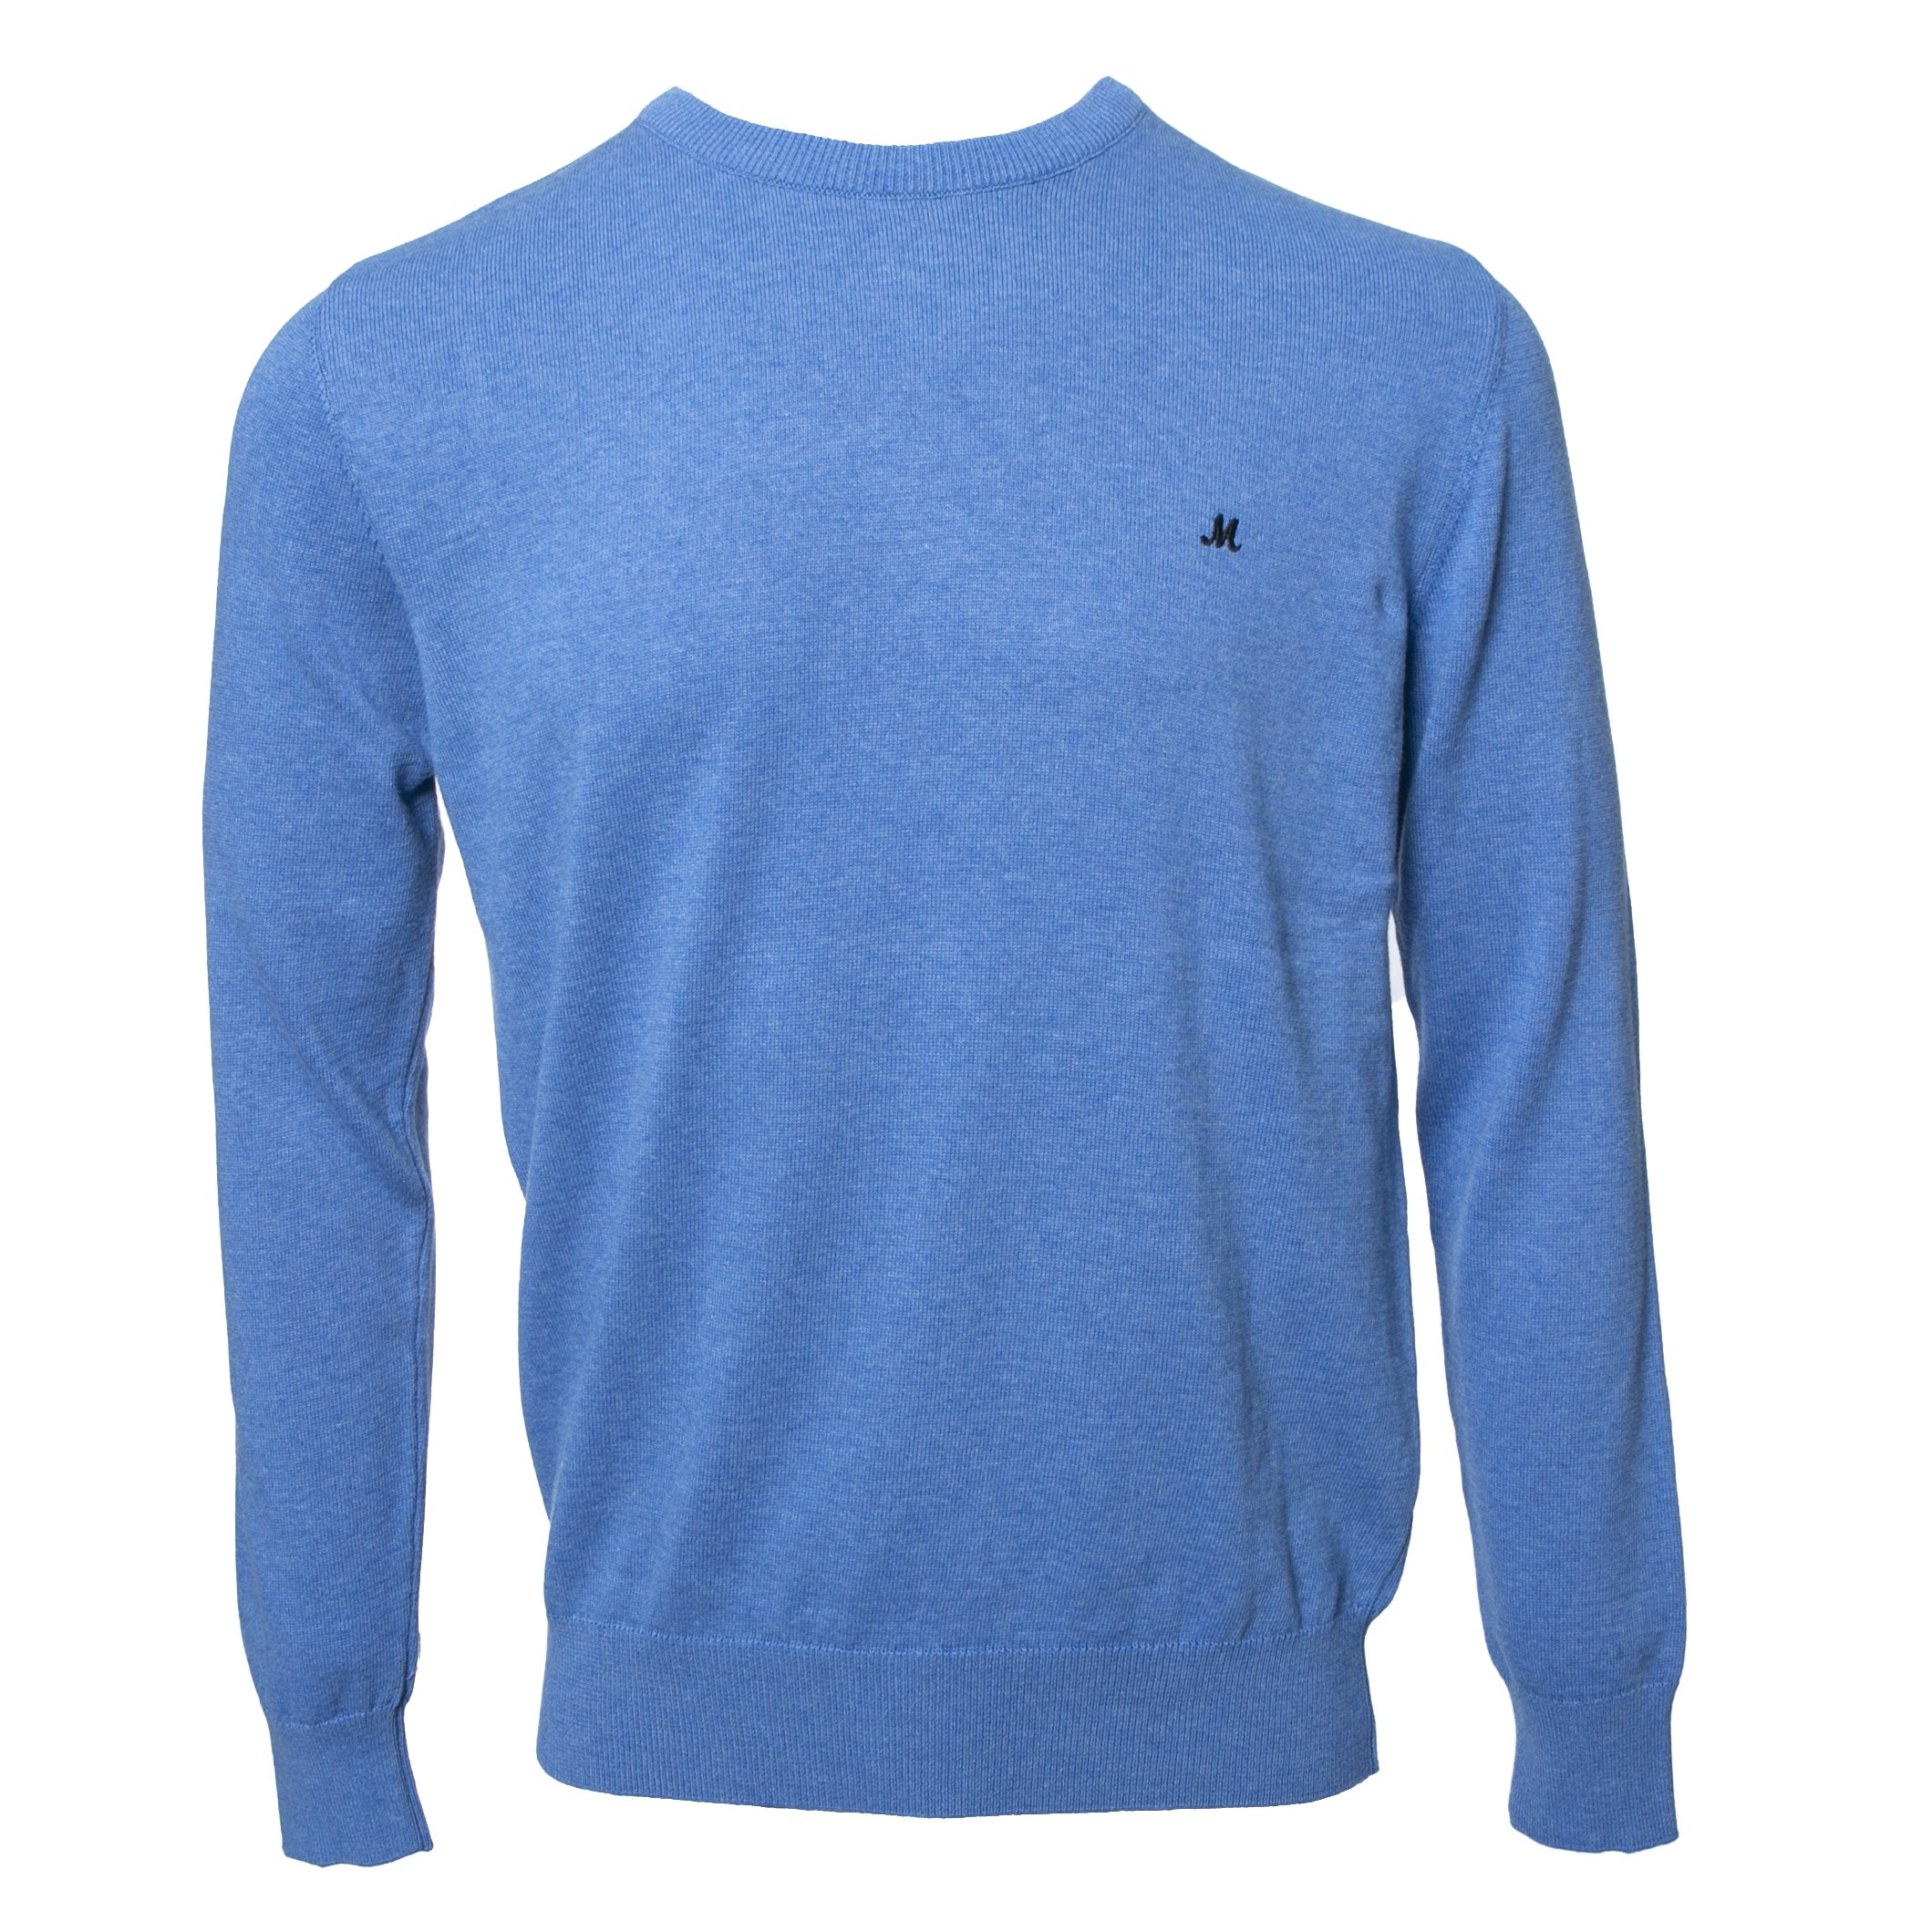 ARIANA MID BLUE CREW KNITWEAR 100% COTTON